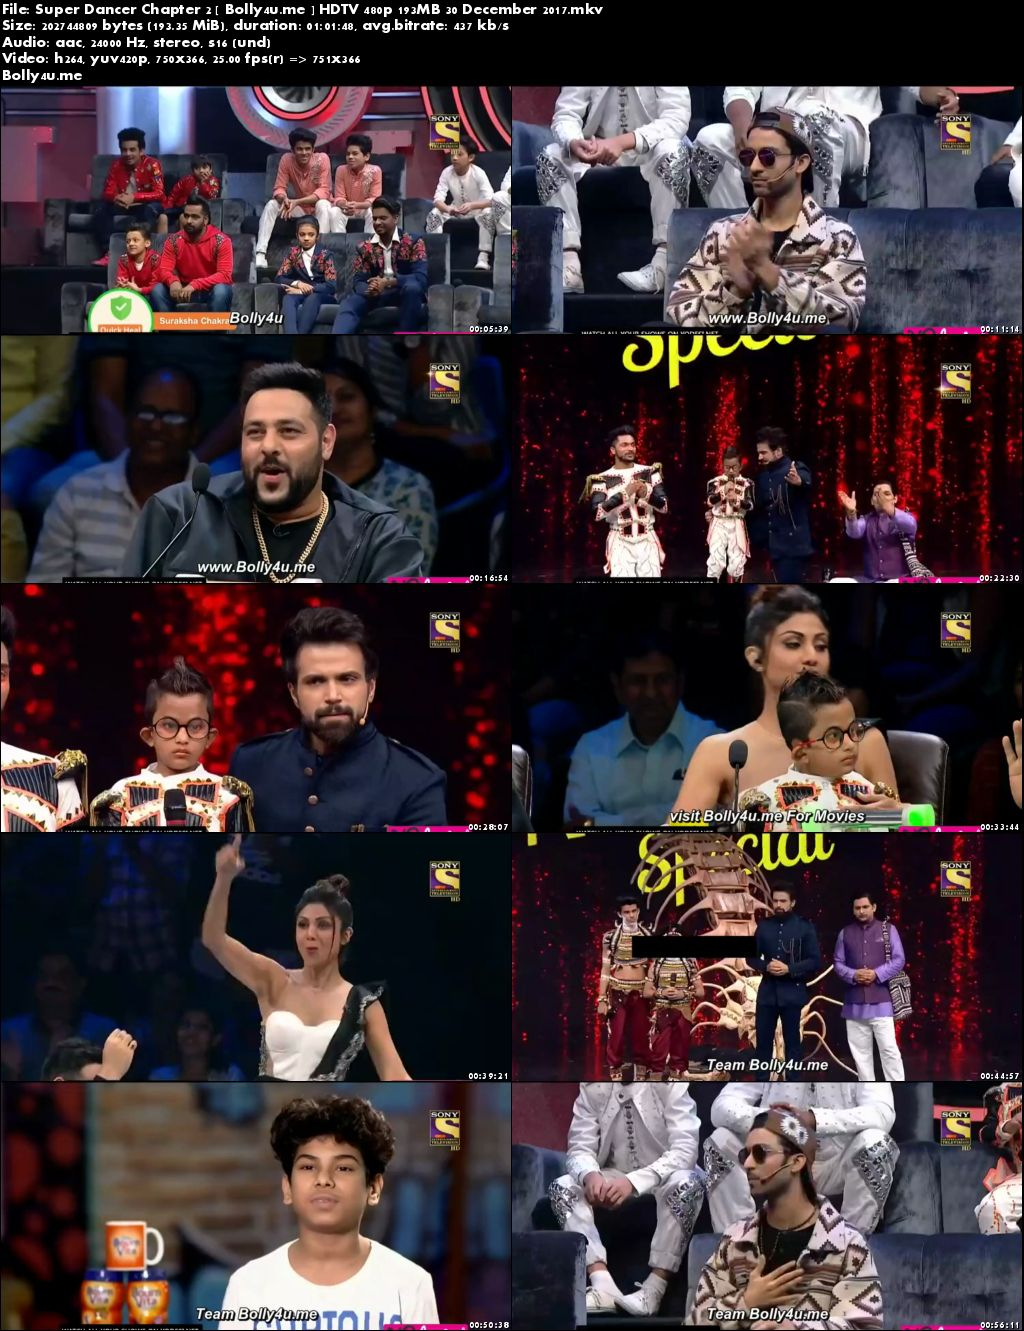 Super Dancer Chapter 2 HDTV 480p 200MB 30 Dec 2017 Download